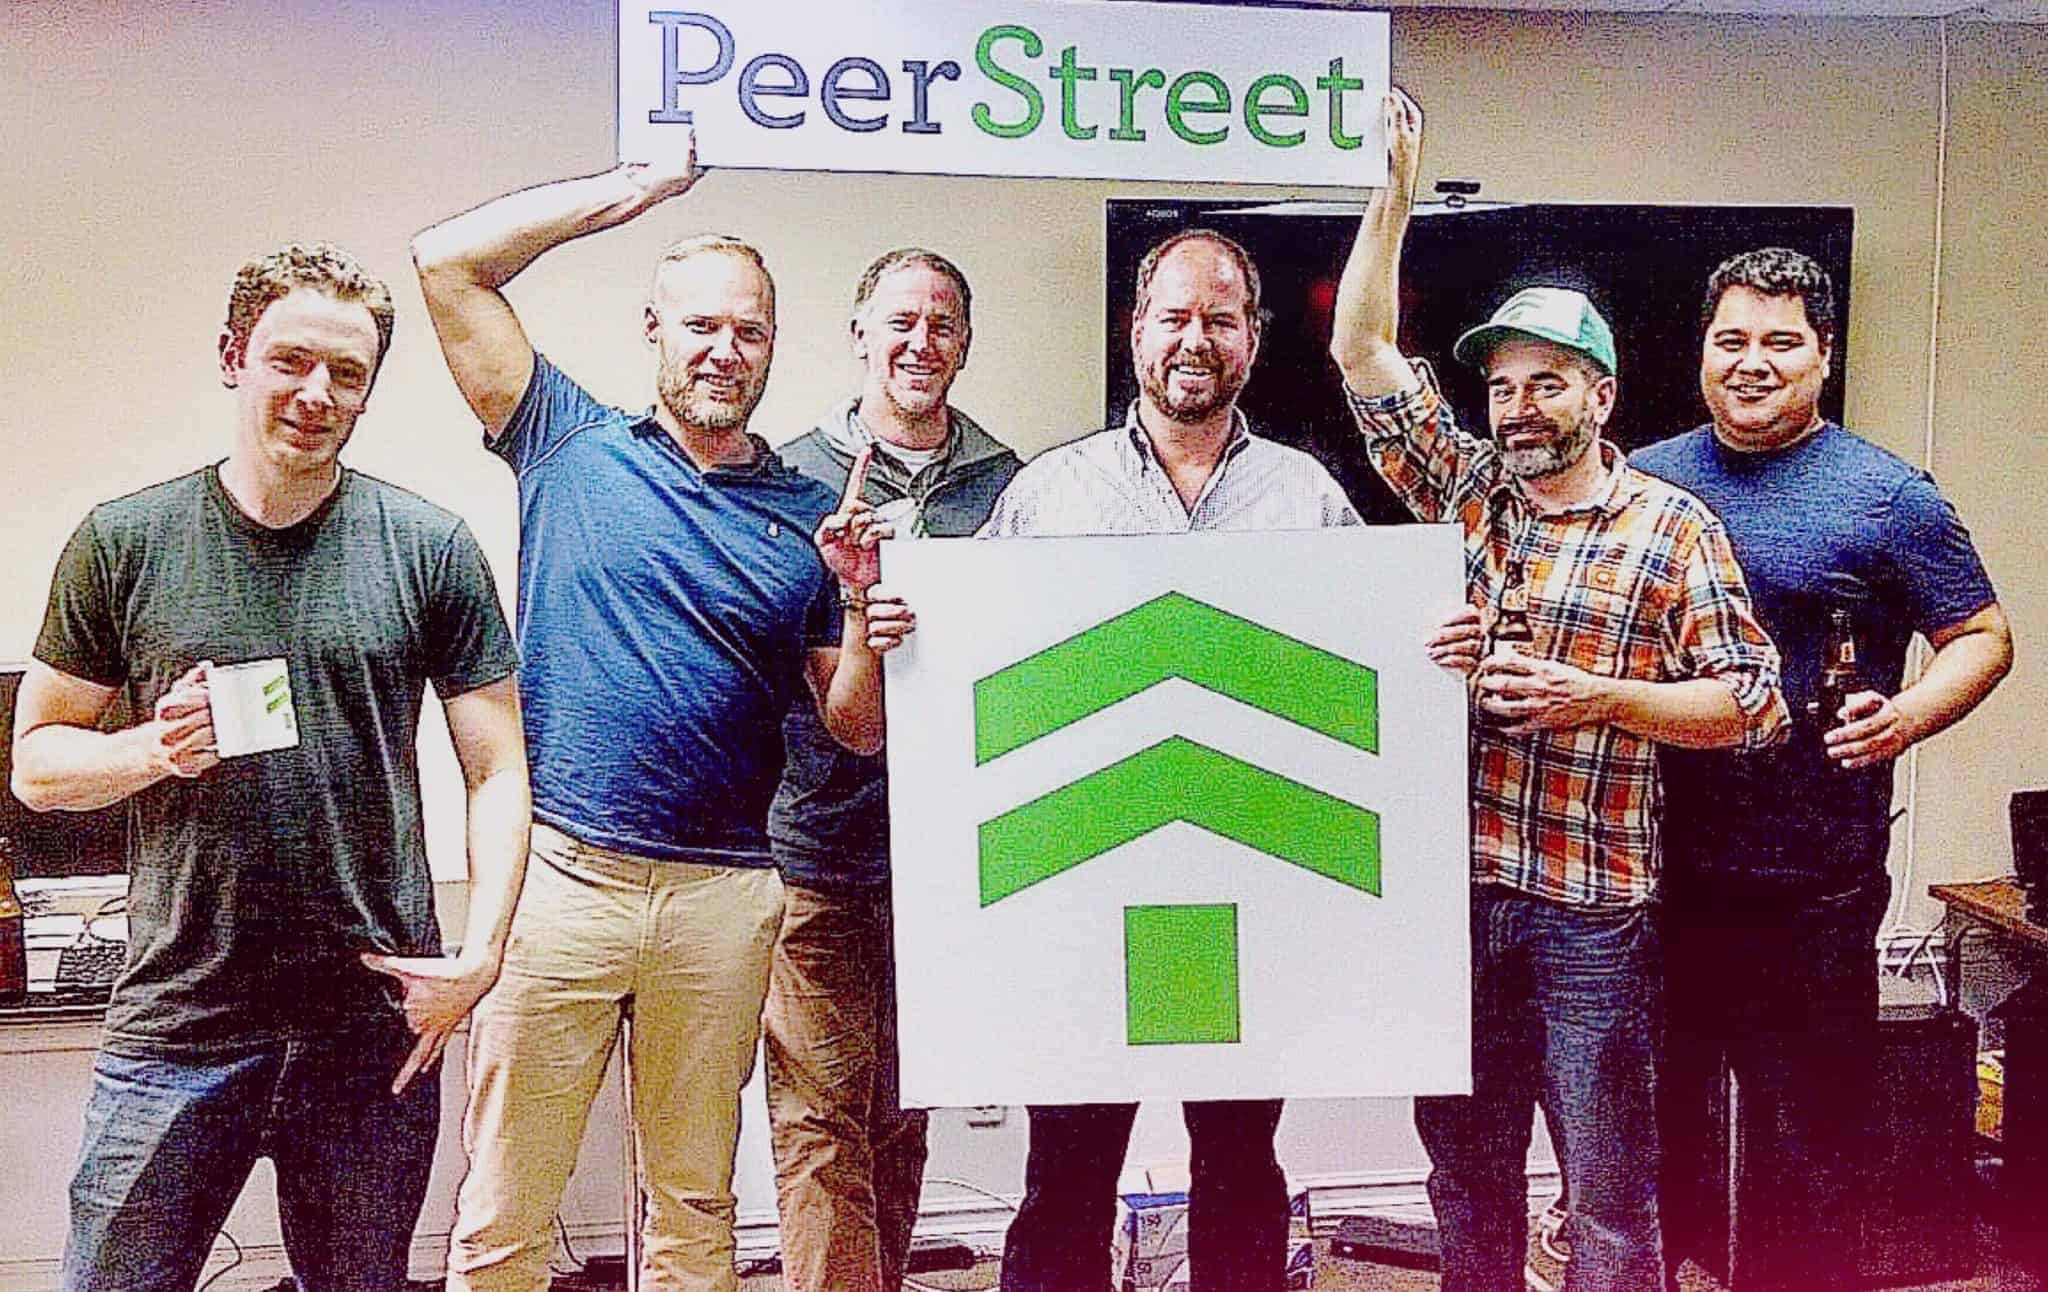 Real Estate Crowdfunding Platform PeerStreet Boosts Executive Team with Two New Hires